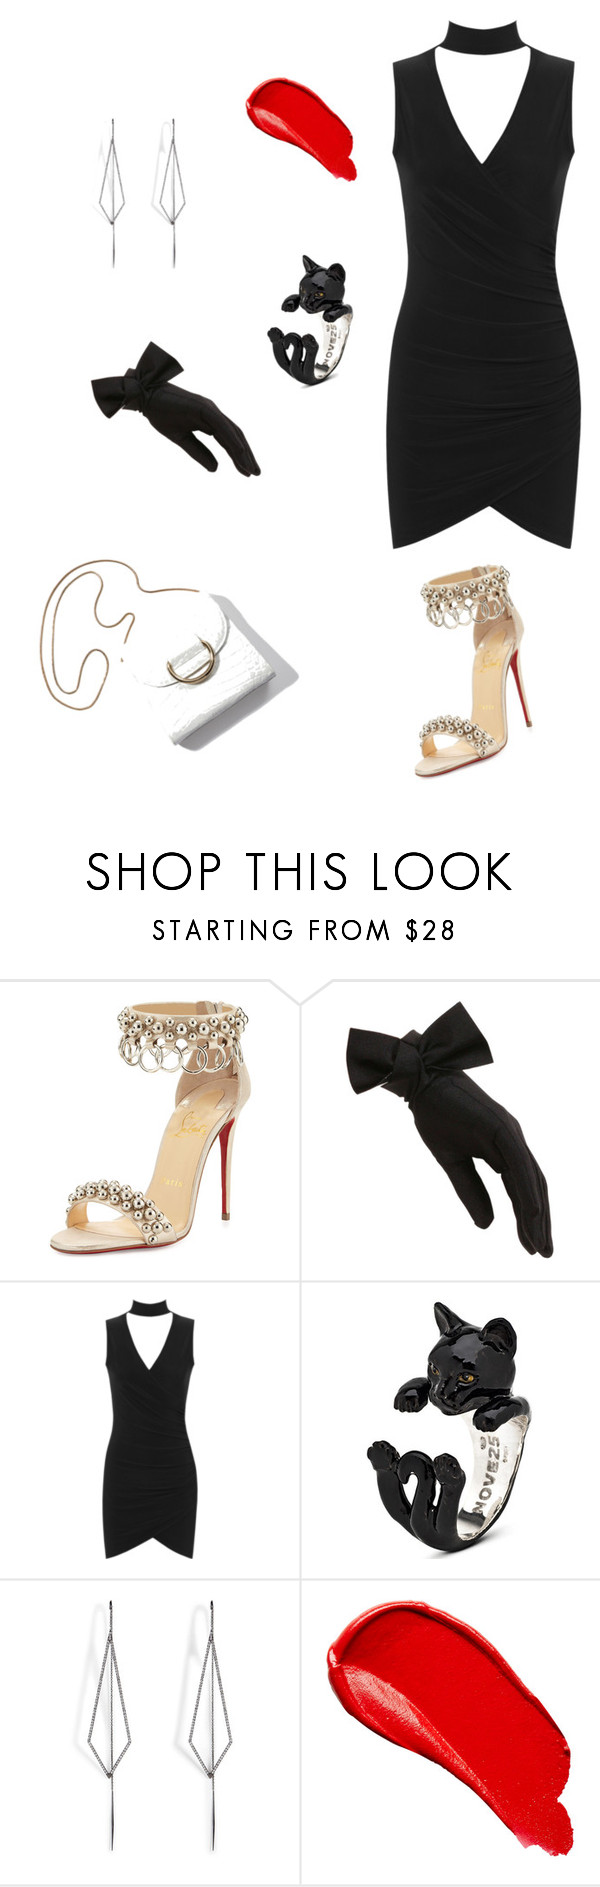 """Untitled #2"" by swityshinde ❤ liked on Polyvore featuring Christian Louboutin, Black, WearAll, Diane Kordas and Burberry"